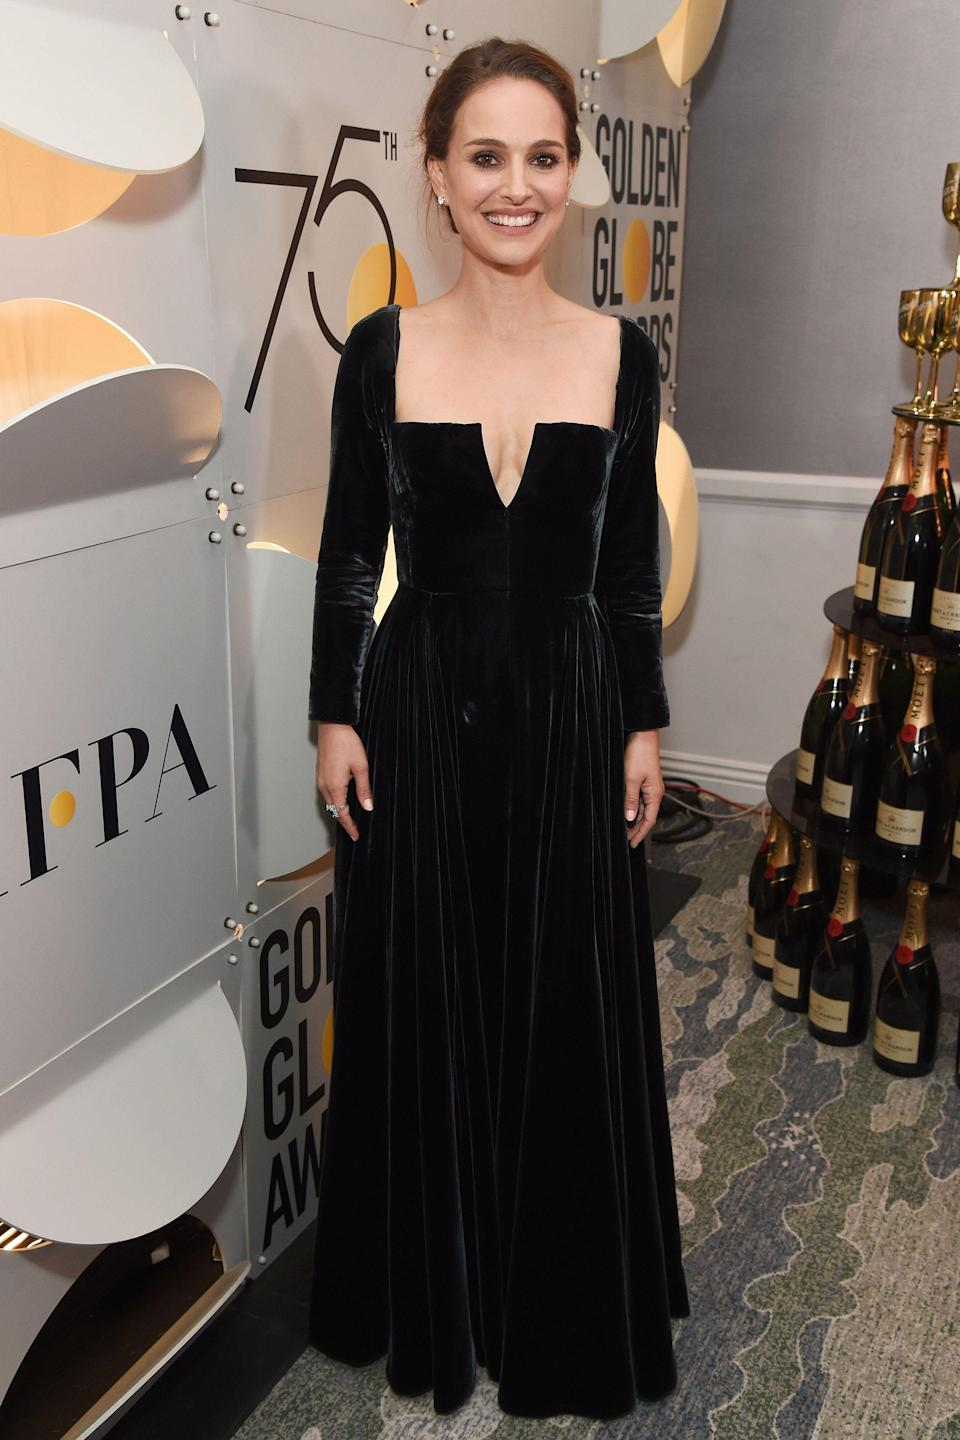 <p>The actress made her Time's Up statement in a black velvet dress</p>